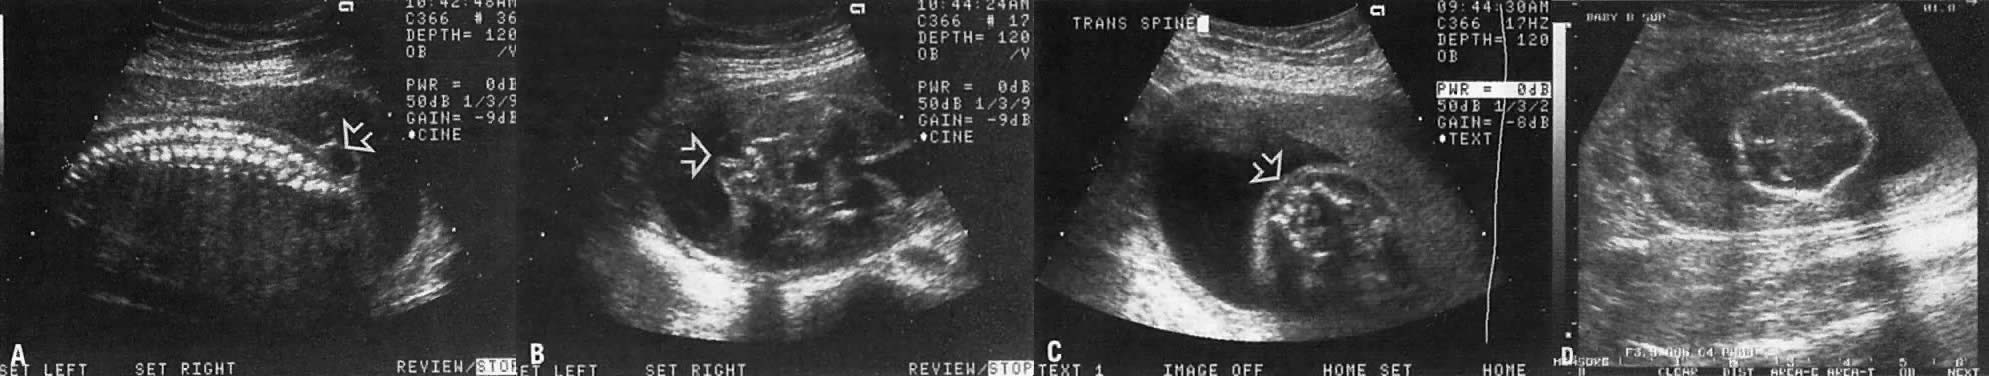 Ultrasound Diagnosis of Fetal Anomalies | GLOWM